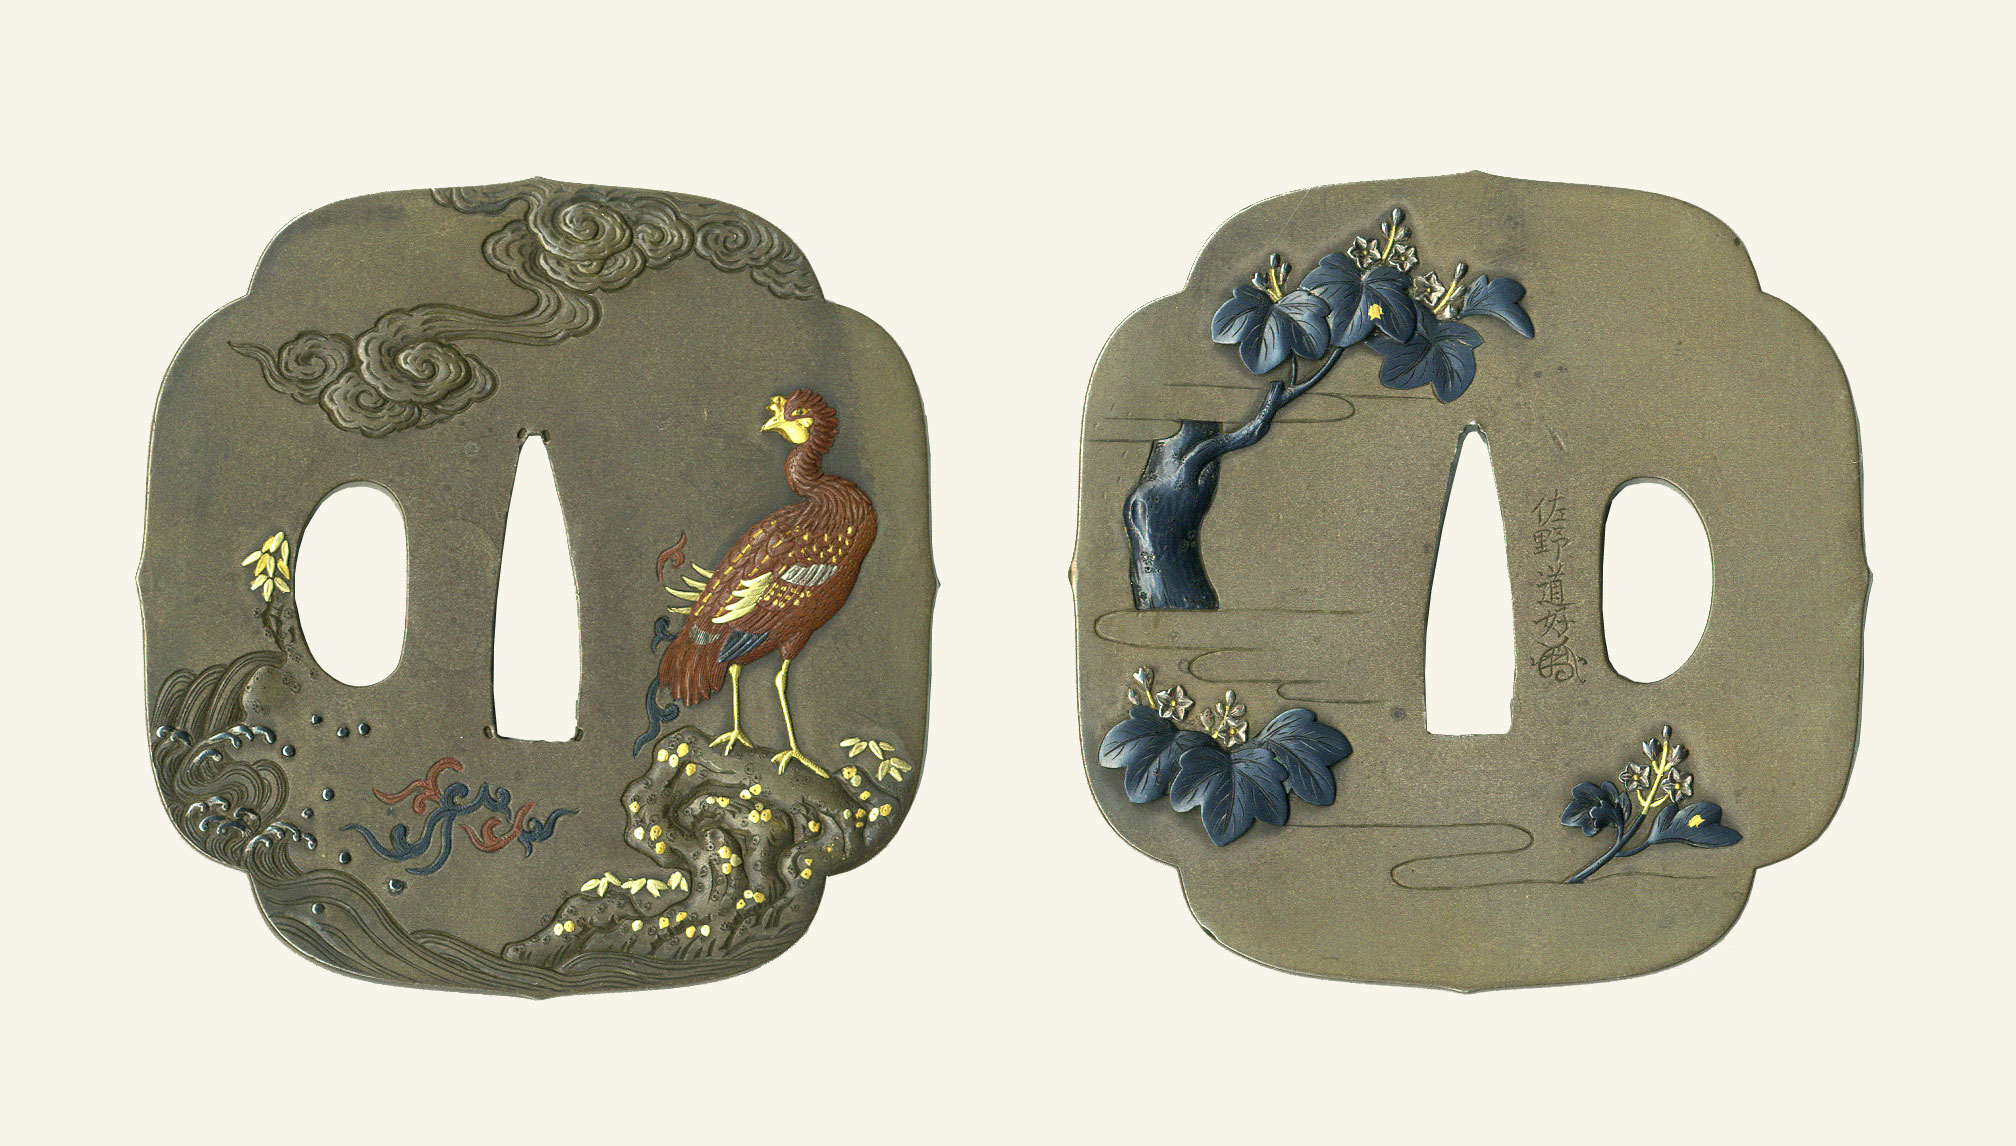 佐野道好 桐鳳凰図鐔Sano Michiyoshi  Tsuba design of Paulownia and Phoenix